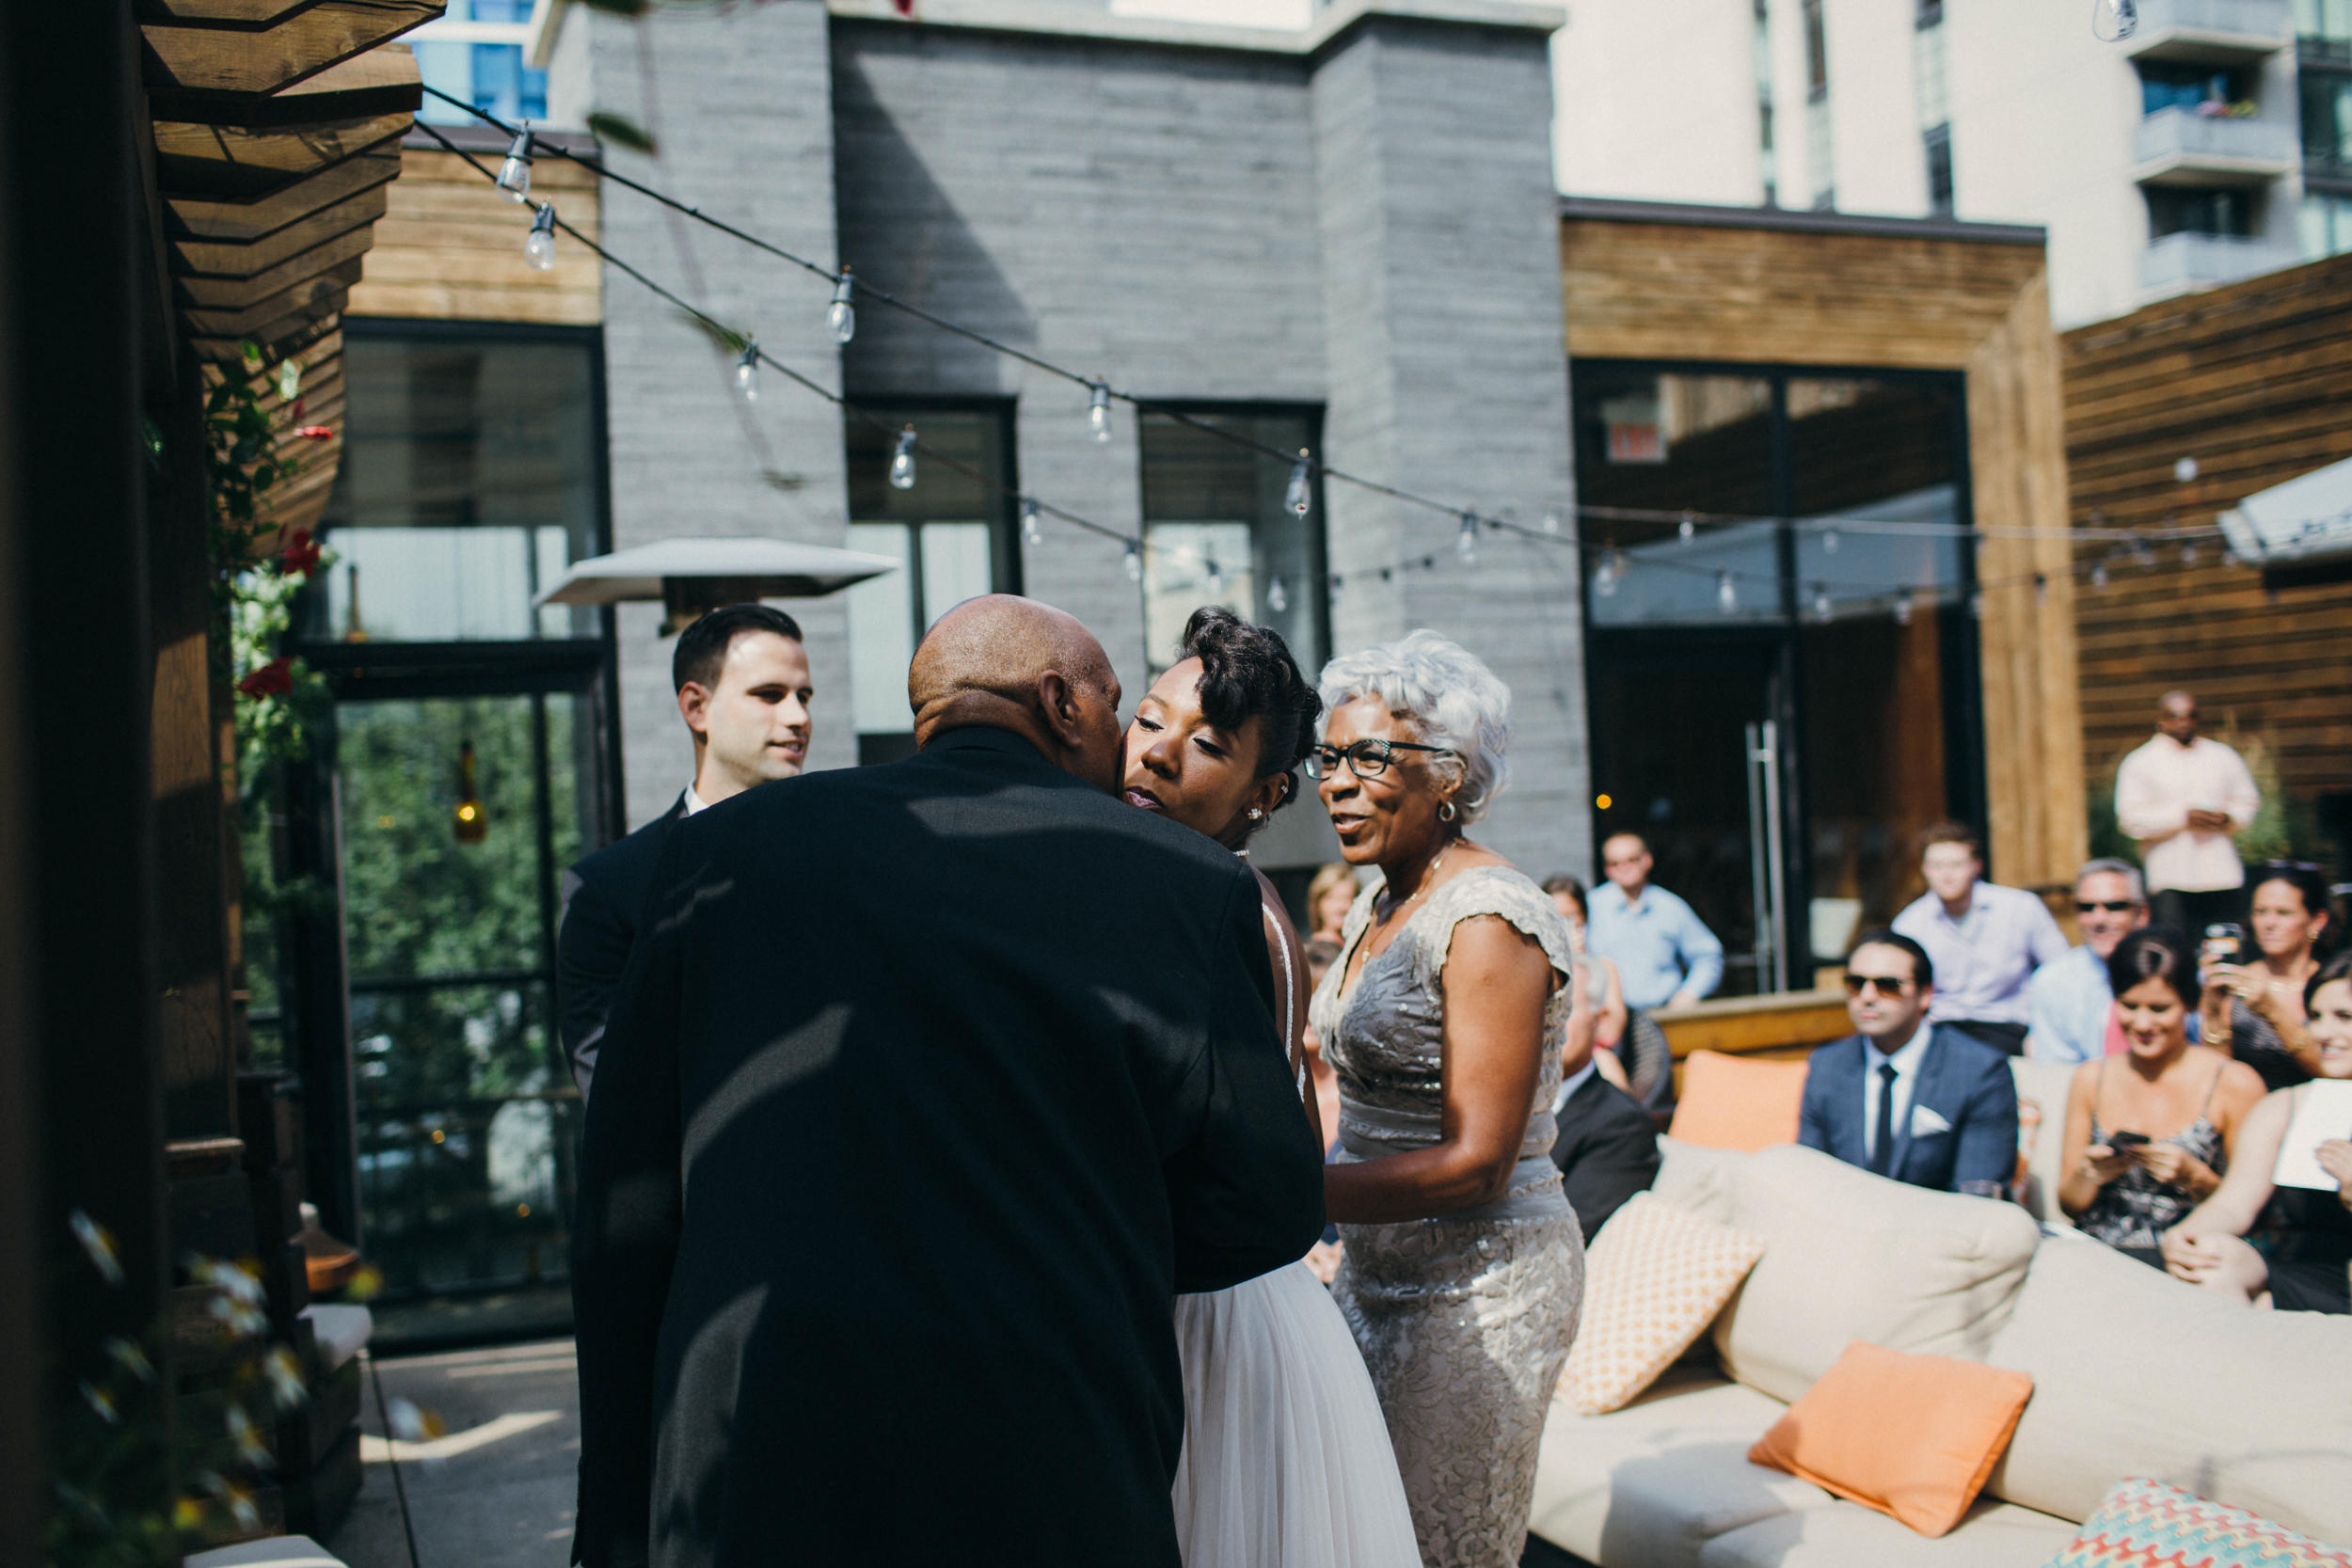 chicago.wedding.urban.intimate.zed451.lake.milton olive park-47.jpg